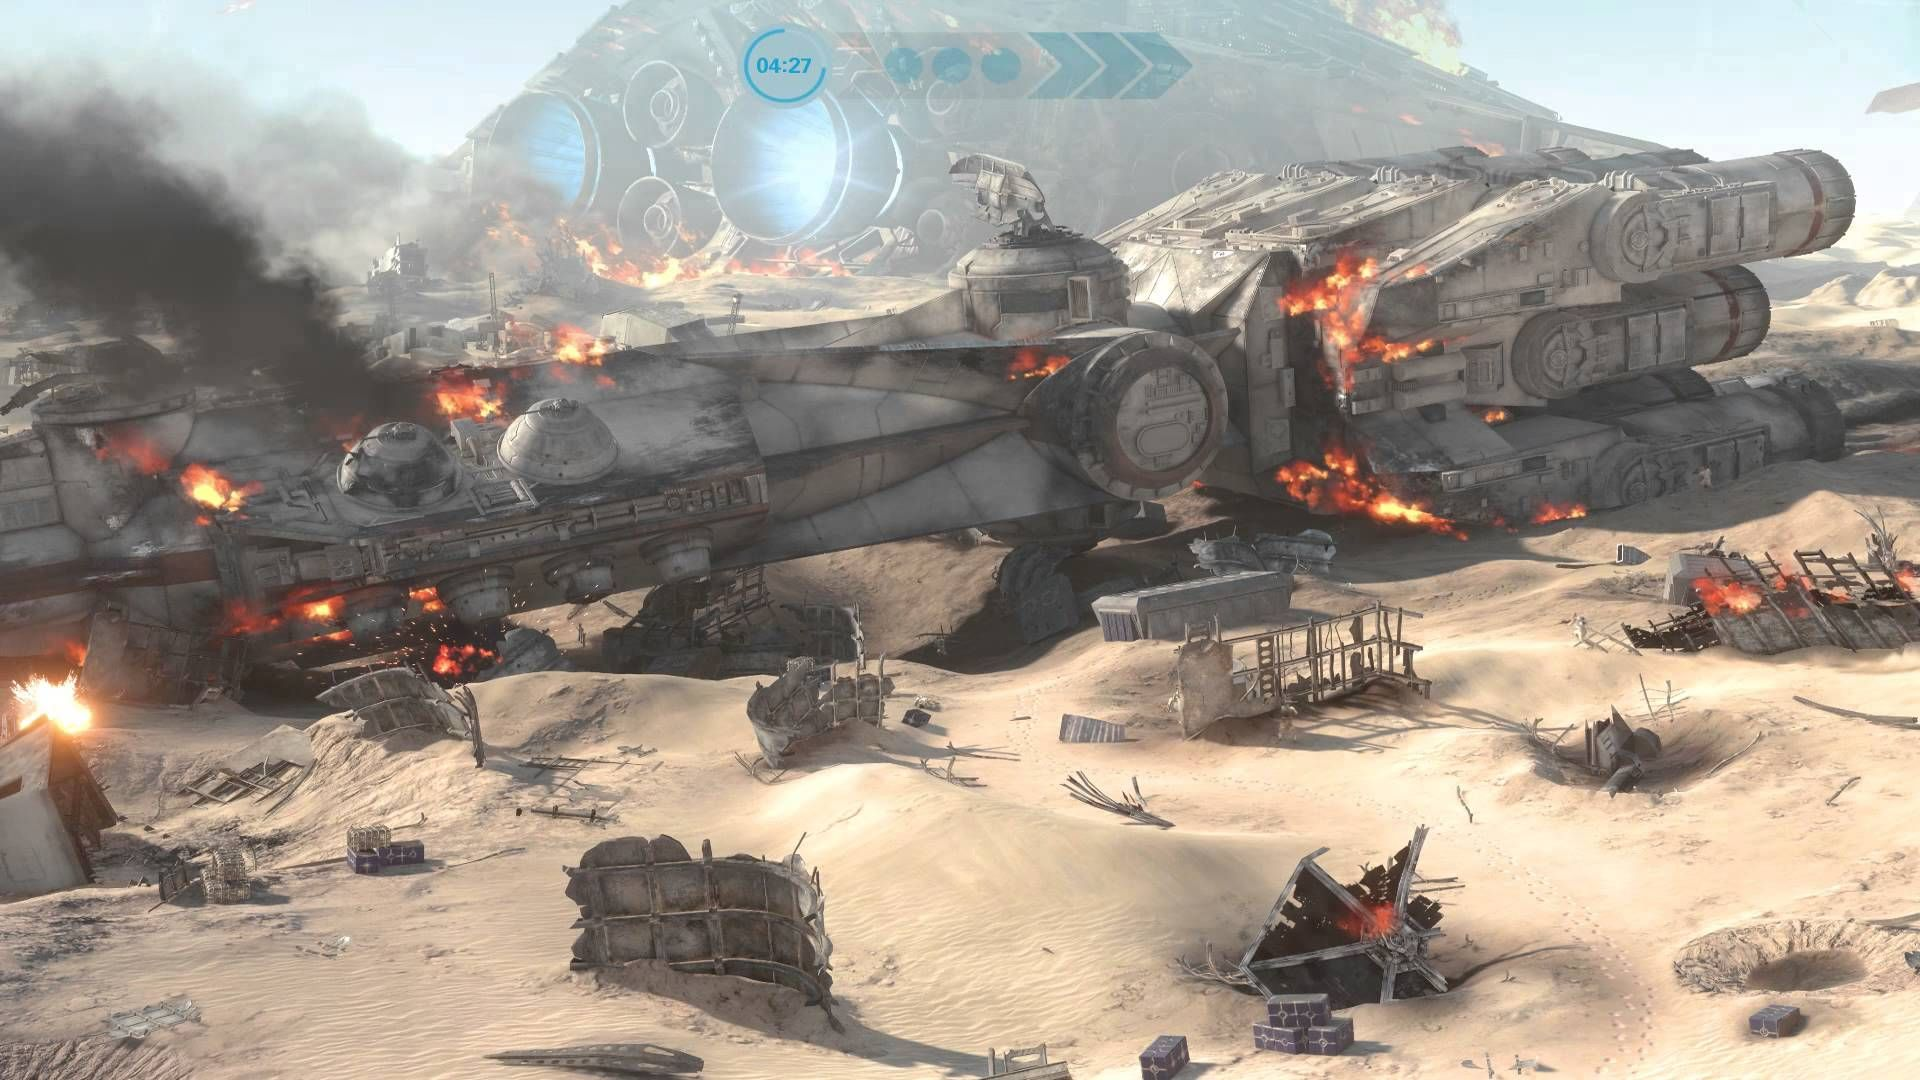 star wars the battle of jakku | star wars: the battle of jakku